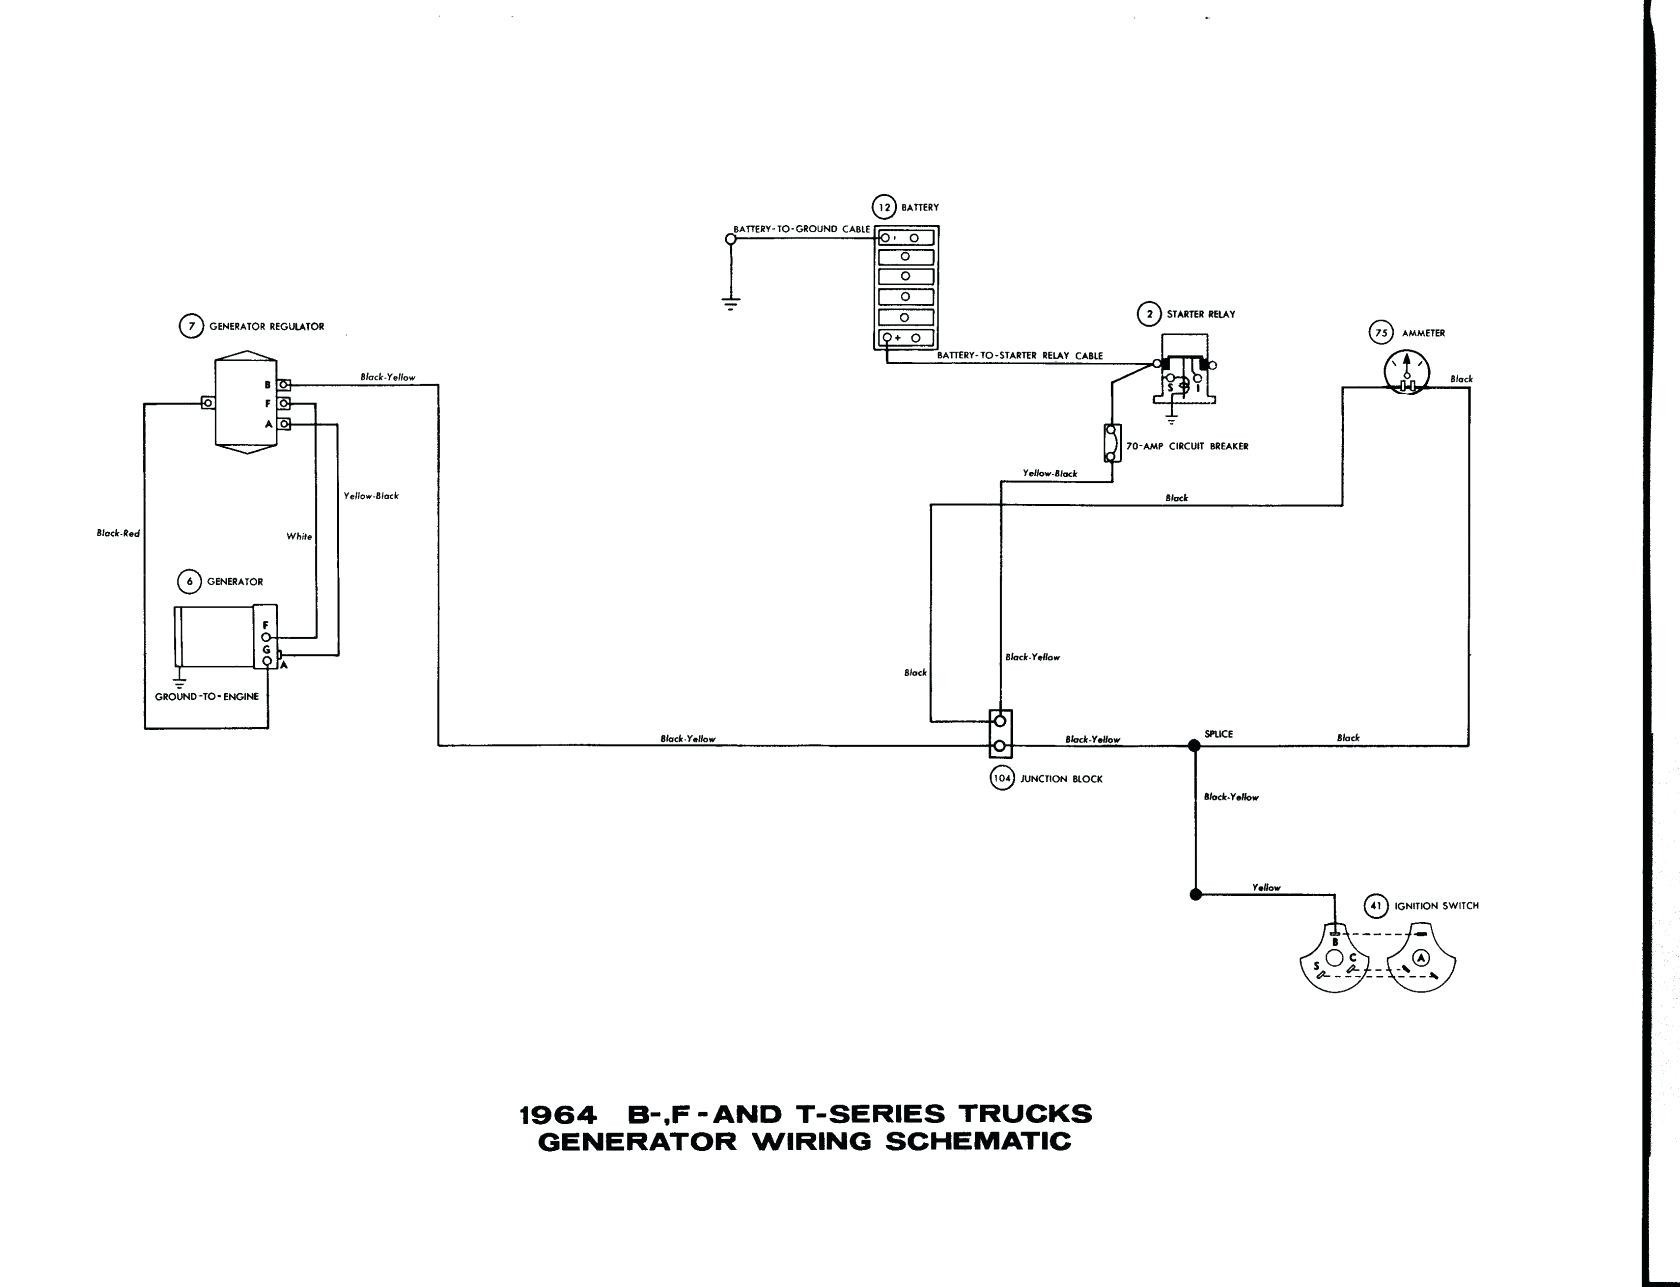 Ac delco alternator wiring diagram sample wiring diagram sample ac delco alternator wiring diagram collection wiring diagram for ac delco alternator new wiring diagram cheapraybanclubmaster Images